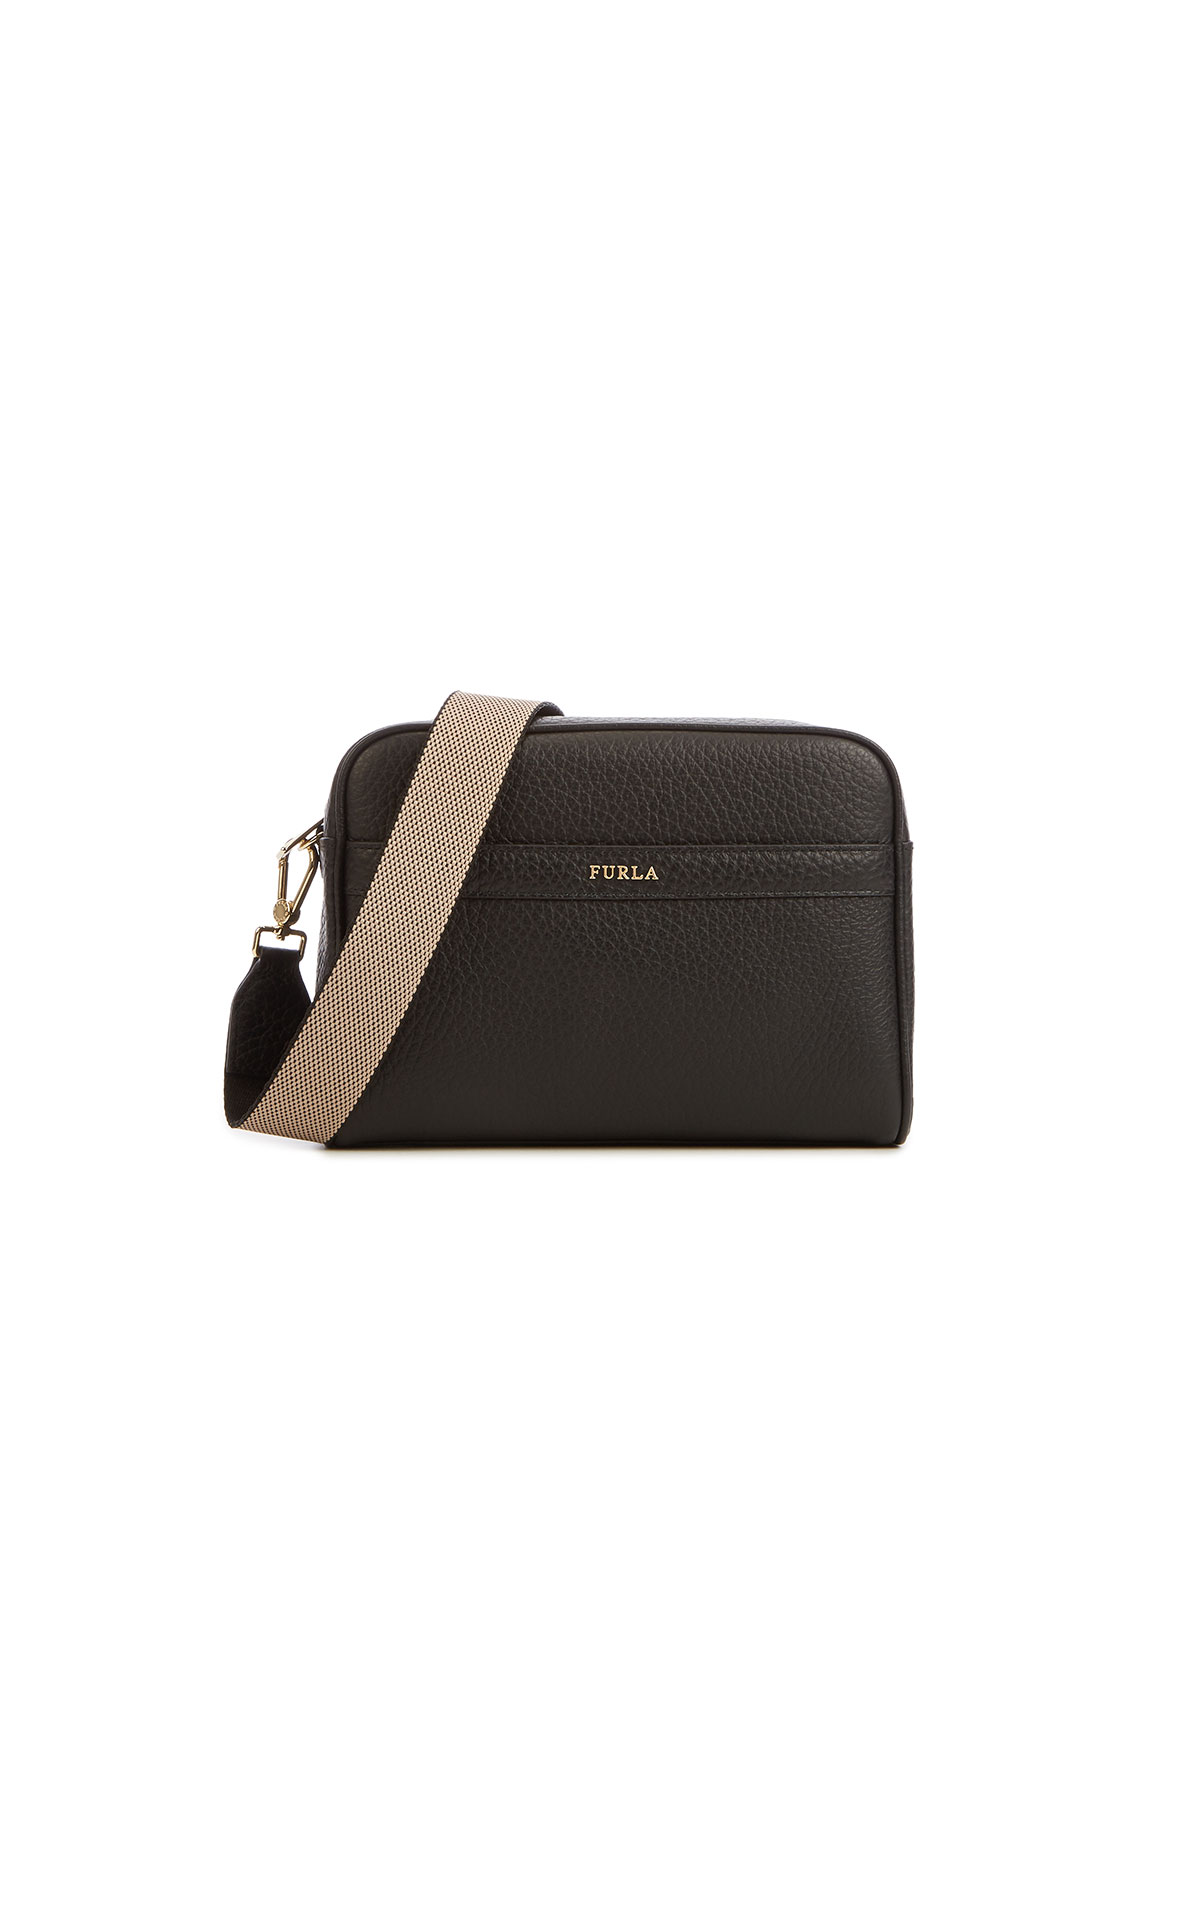 Furla's Avril small crossbody with web strap at The Bicester Village Shopping Collection